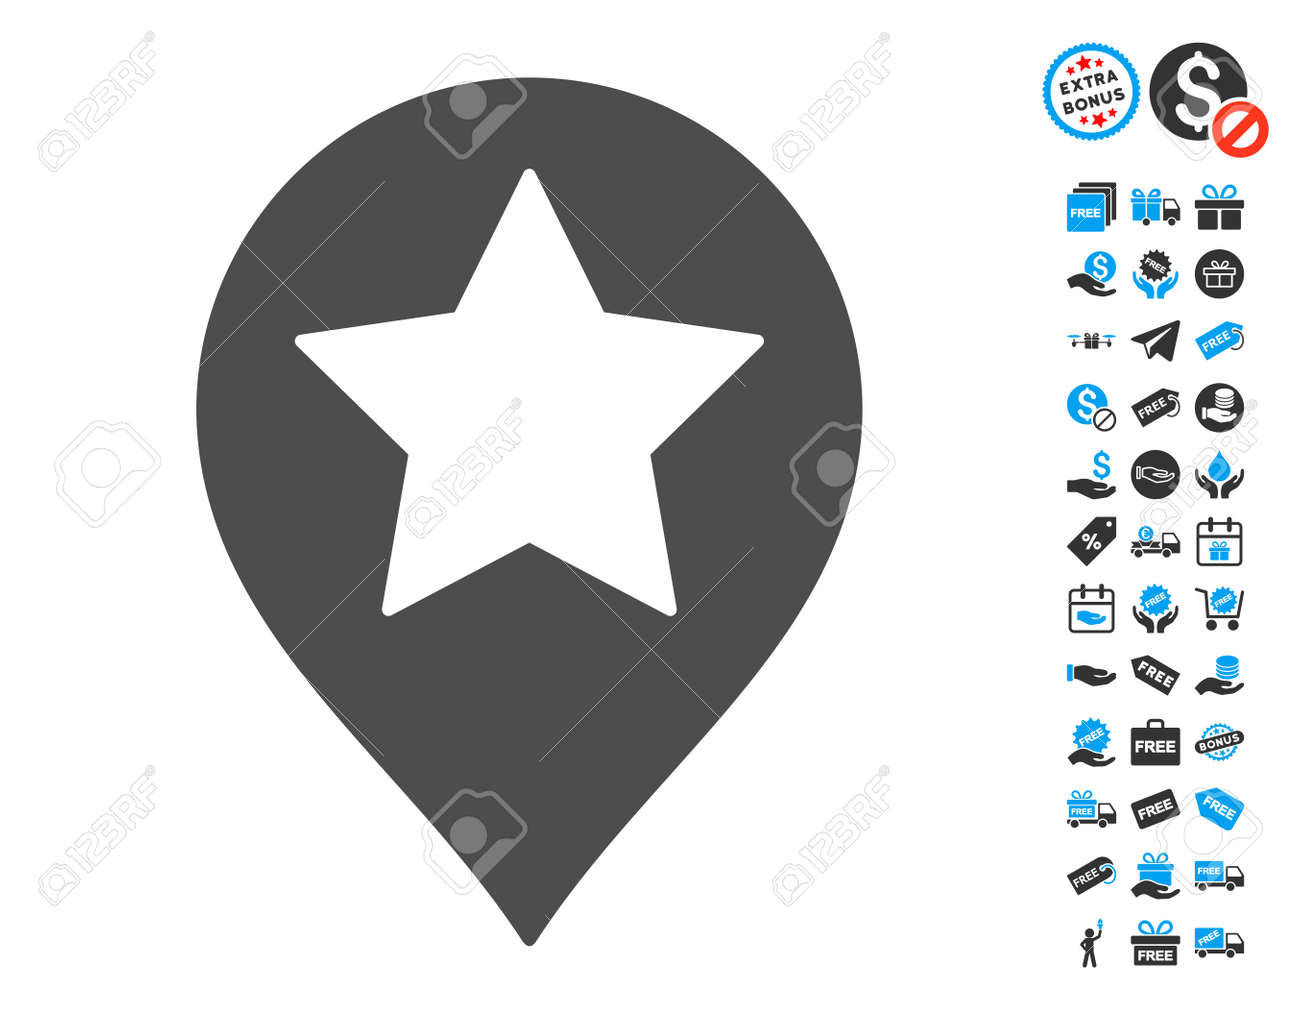 What Is A Star Map.Star Map Marker Gray Pictograph With Free Bonus Symbols Vector